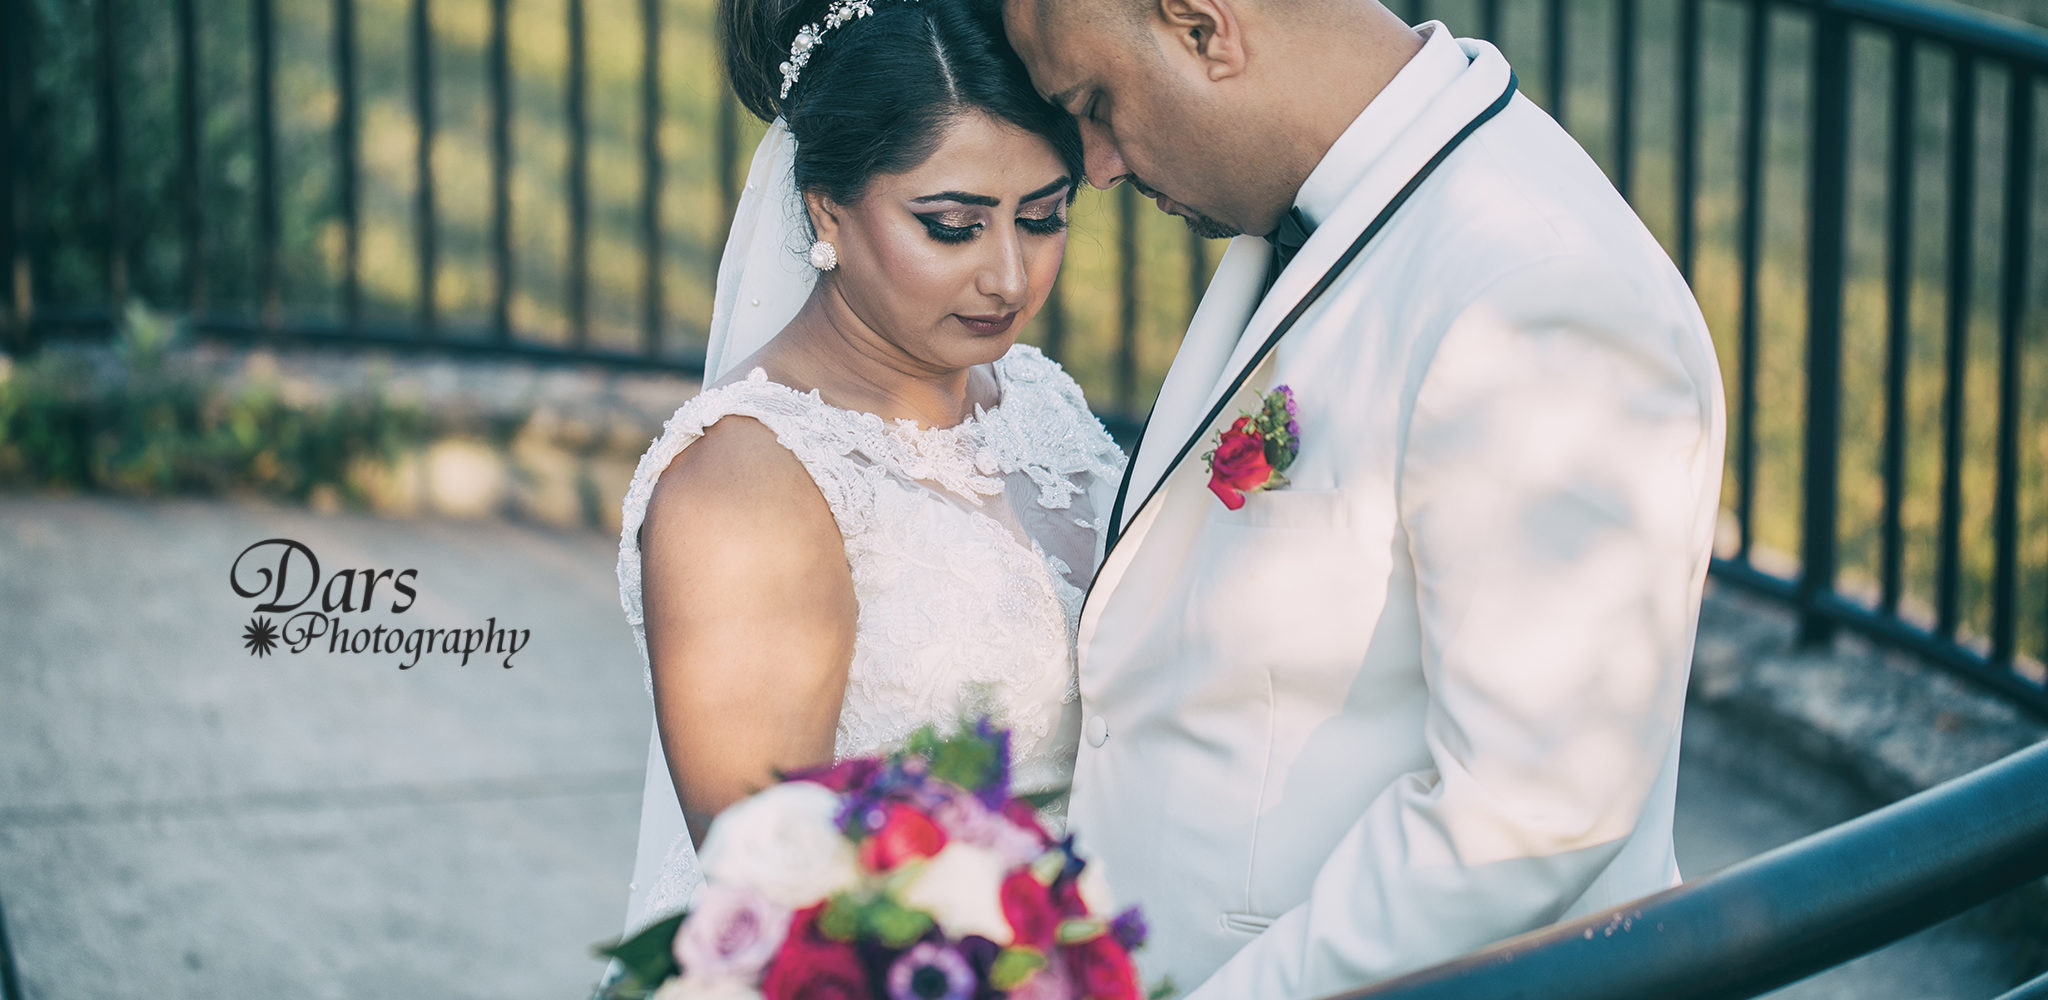 FEATURED weddings of DARS PHOTOGRAPHY